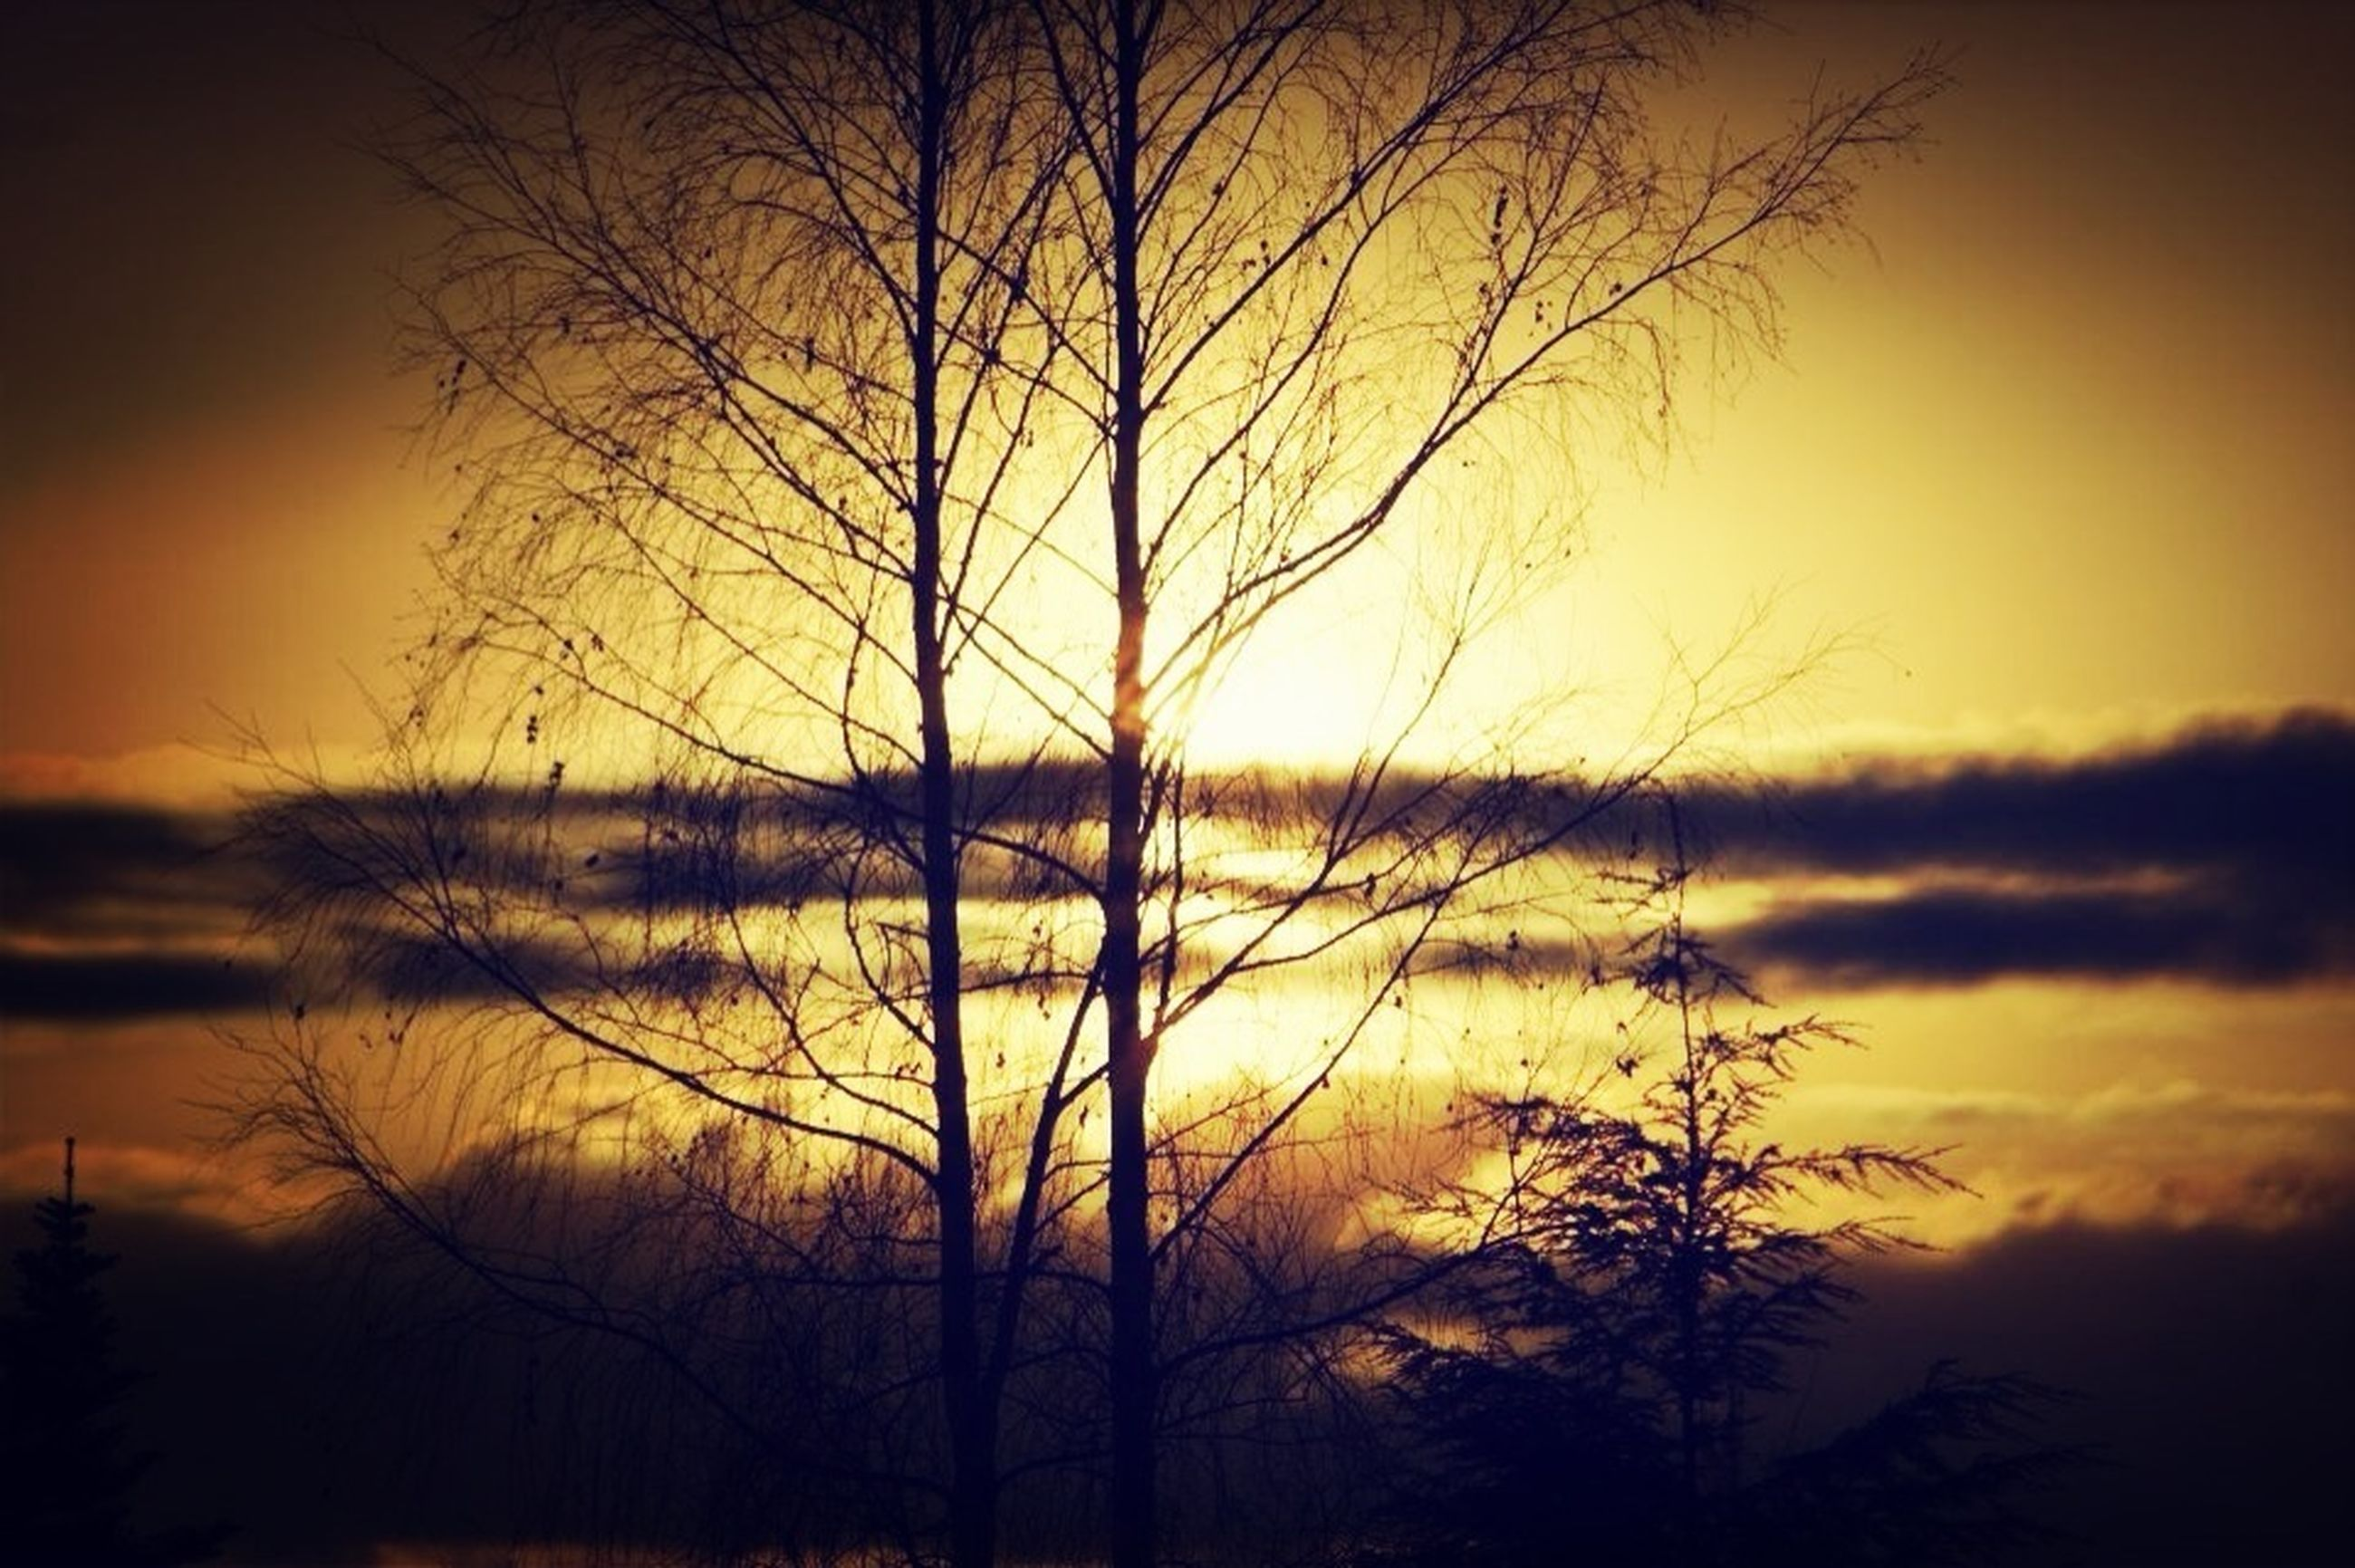 sunset, silhouette, bare tree, orange color, tranquility, scenics, tranquil scene, beauty in nature, tree, sky, sun, branch, nature, idyllic, cloud - sky, dramatic sky, majestic, outdoors, no people, moody sky